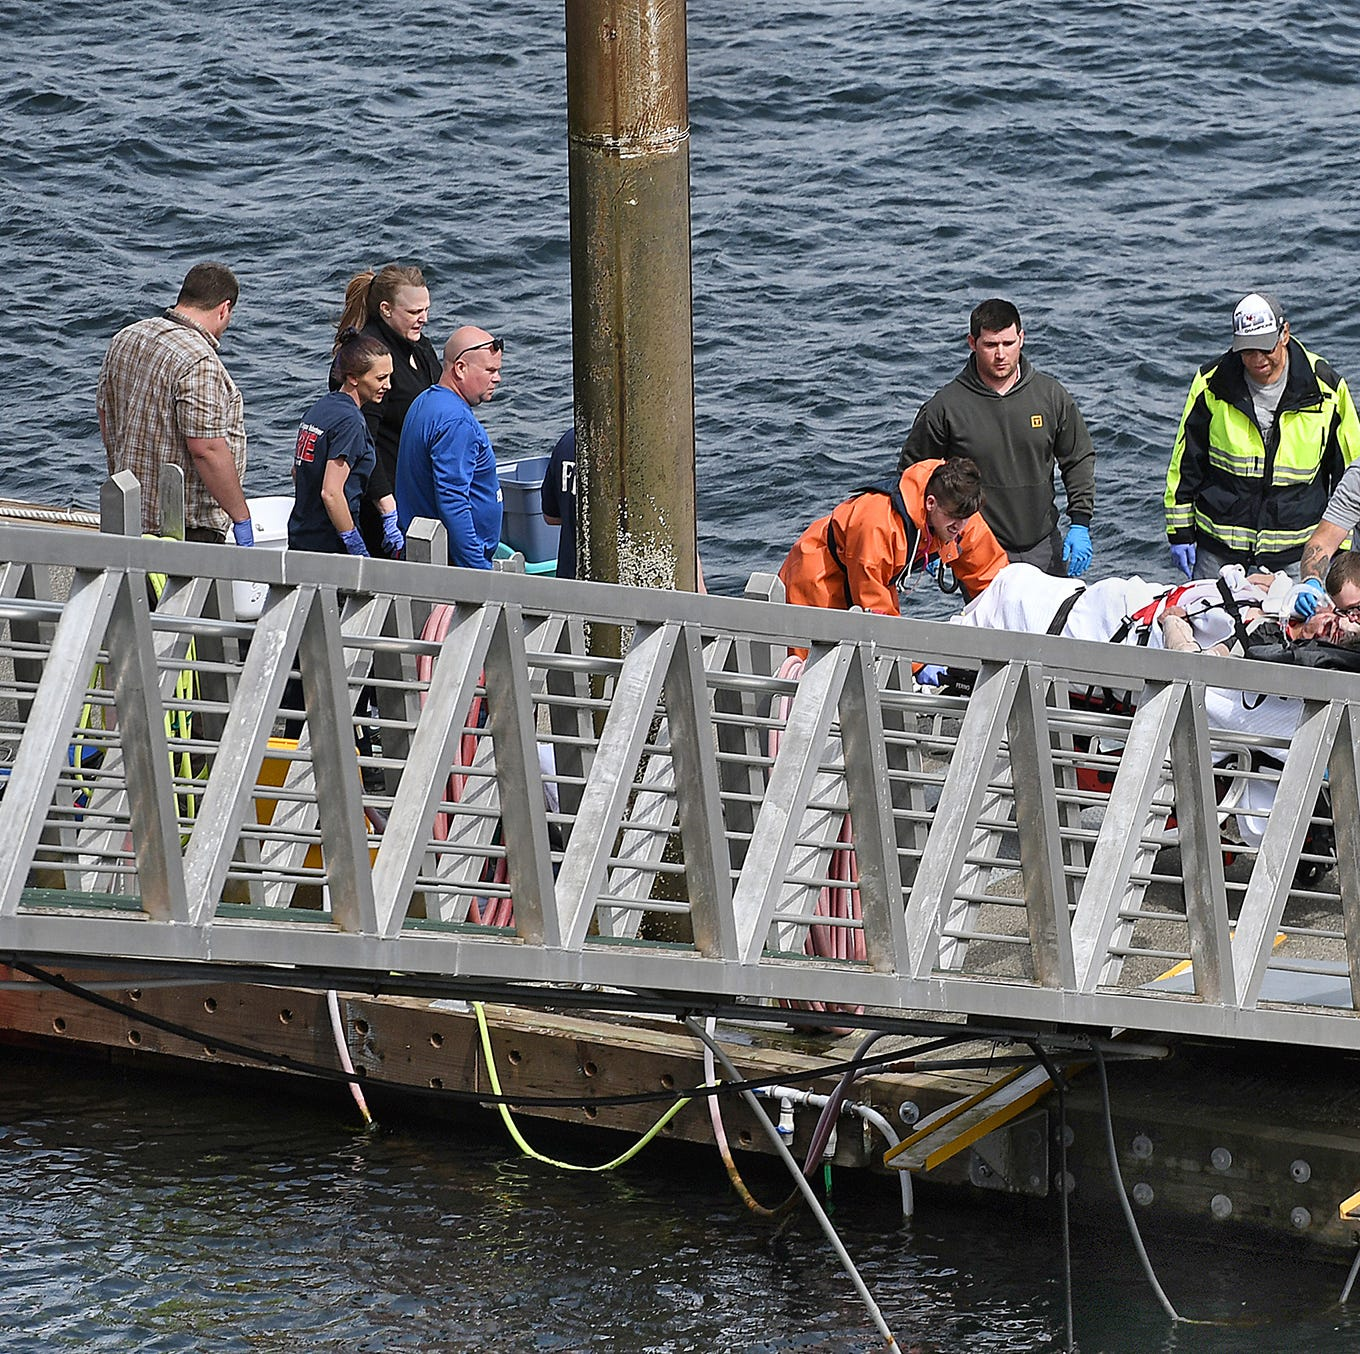 Two floatplanes collide in midair near Ketchikan, Alaska; 5 dead, 1 missing, 10 injured